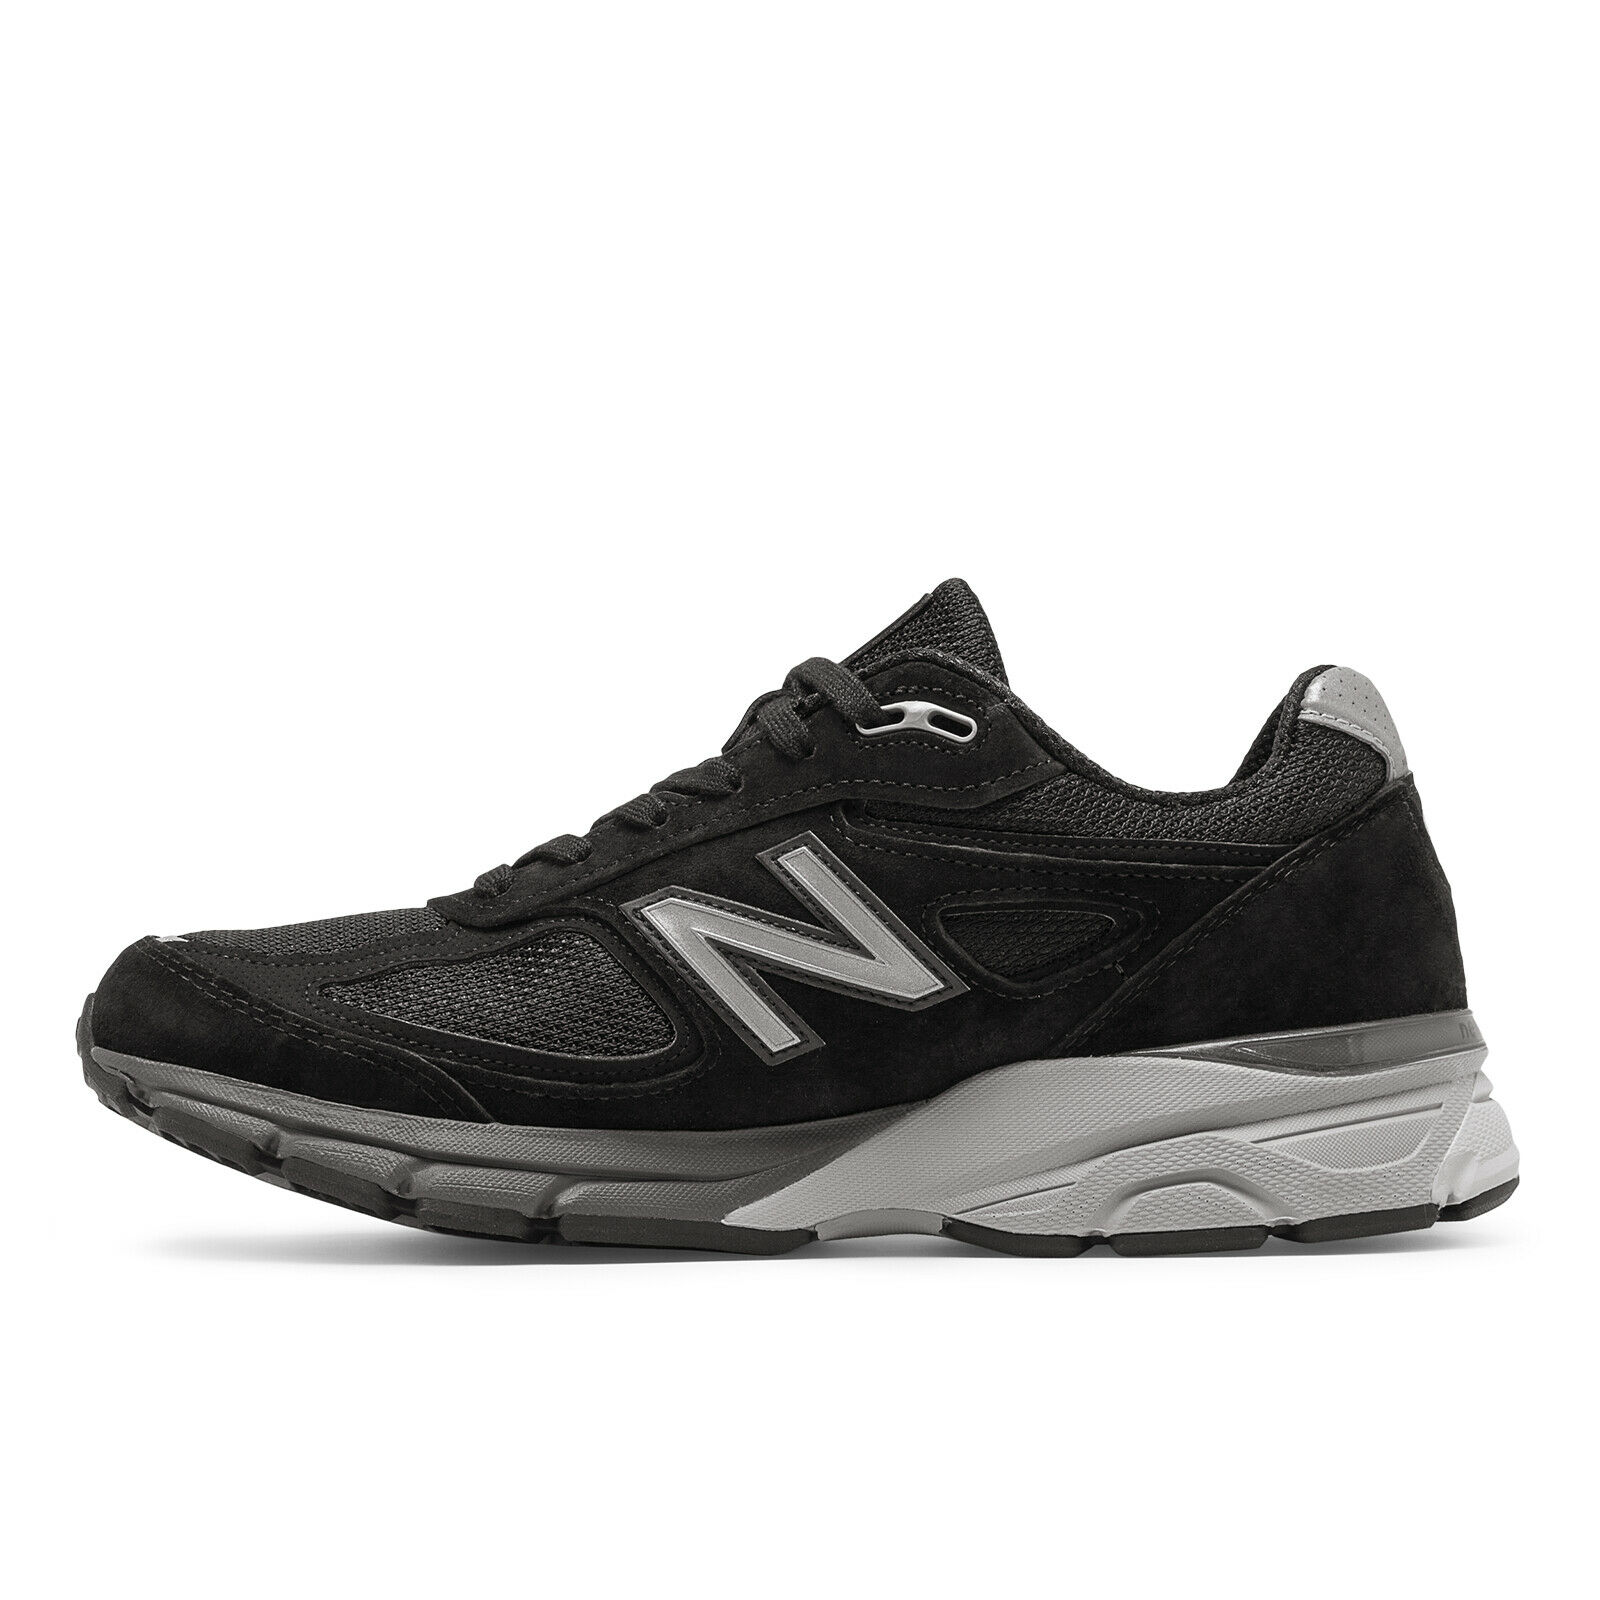 New Balance NB 990v4 Mens Running Sneakers shoes Black with Silver M990-V4